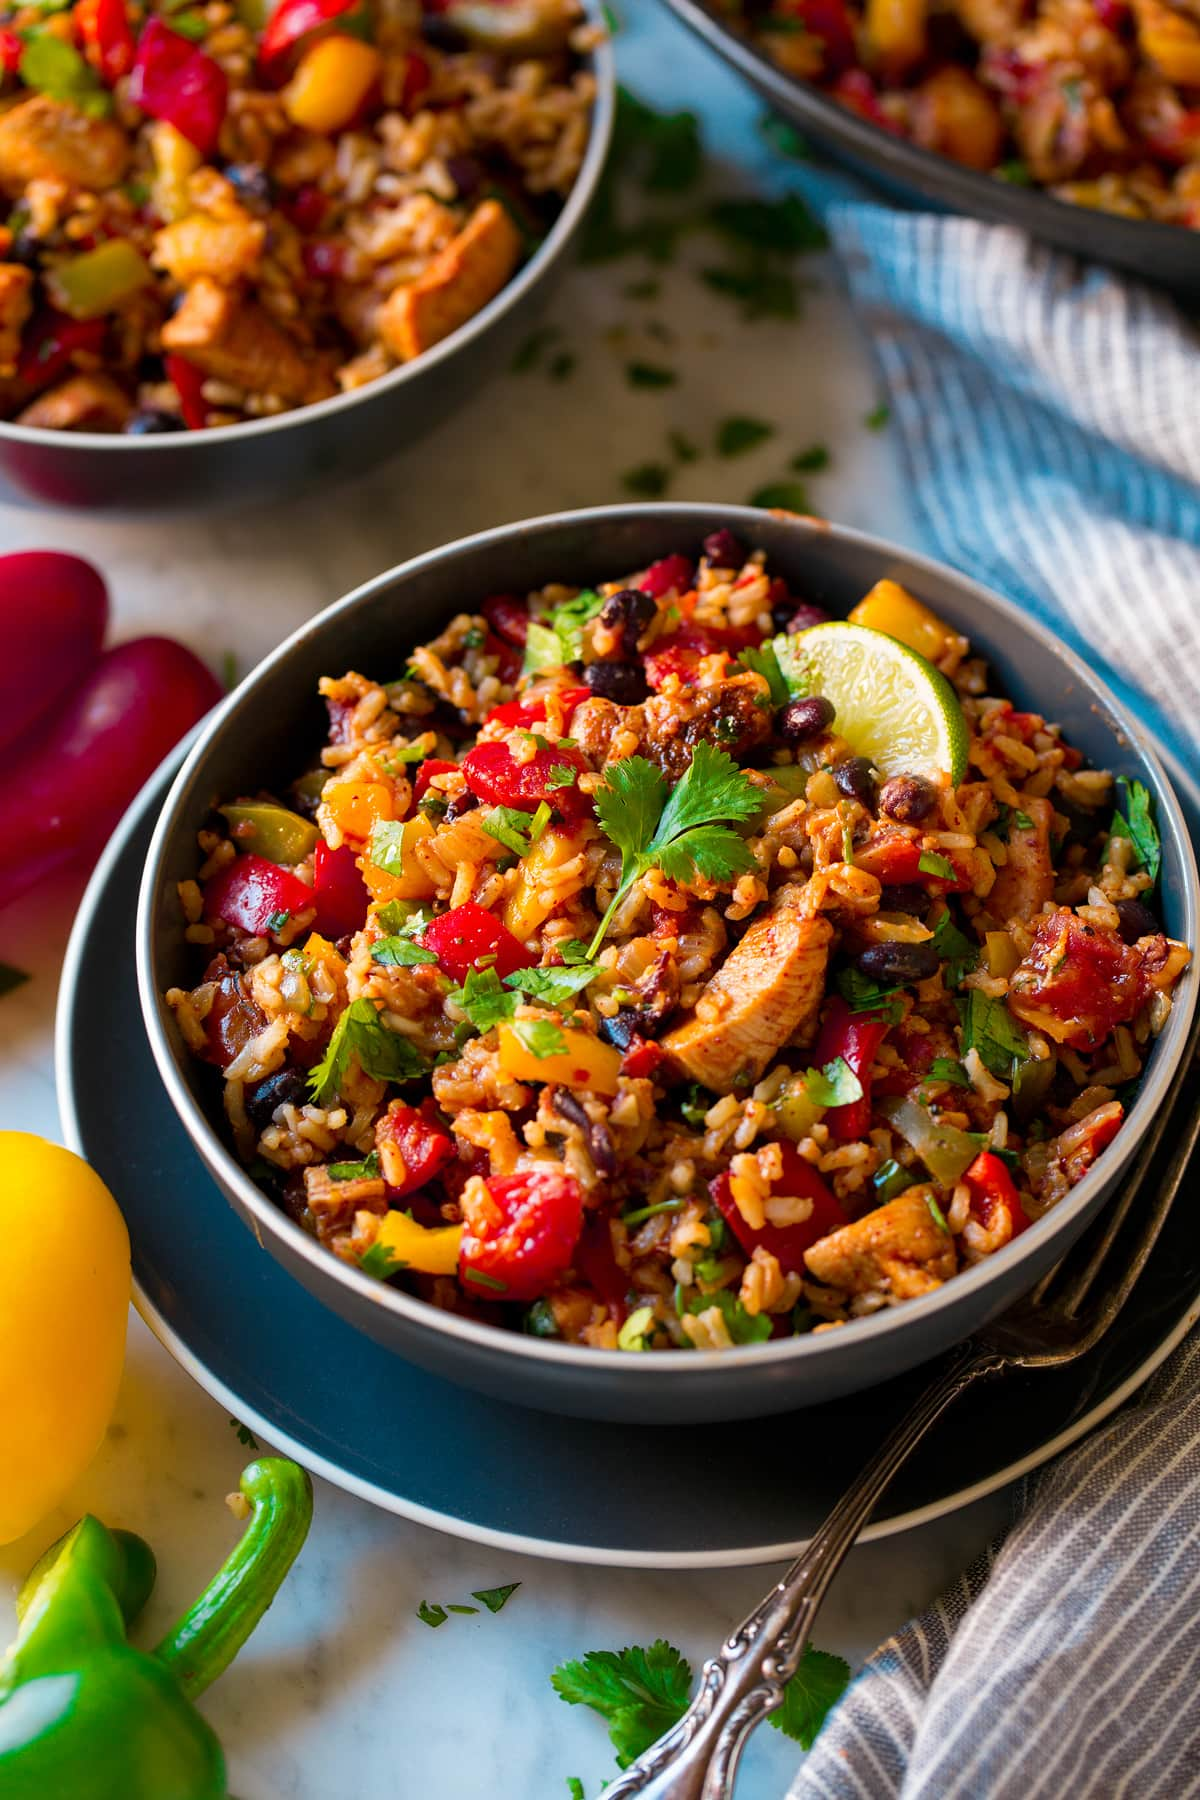 Chicken Fajita Rice Bowl shown as two servings in dark blue bowls.